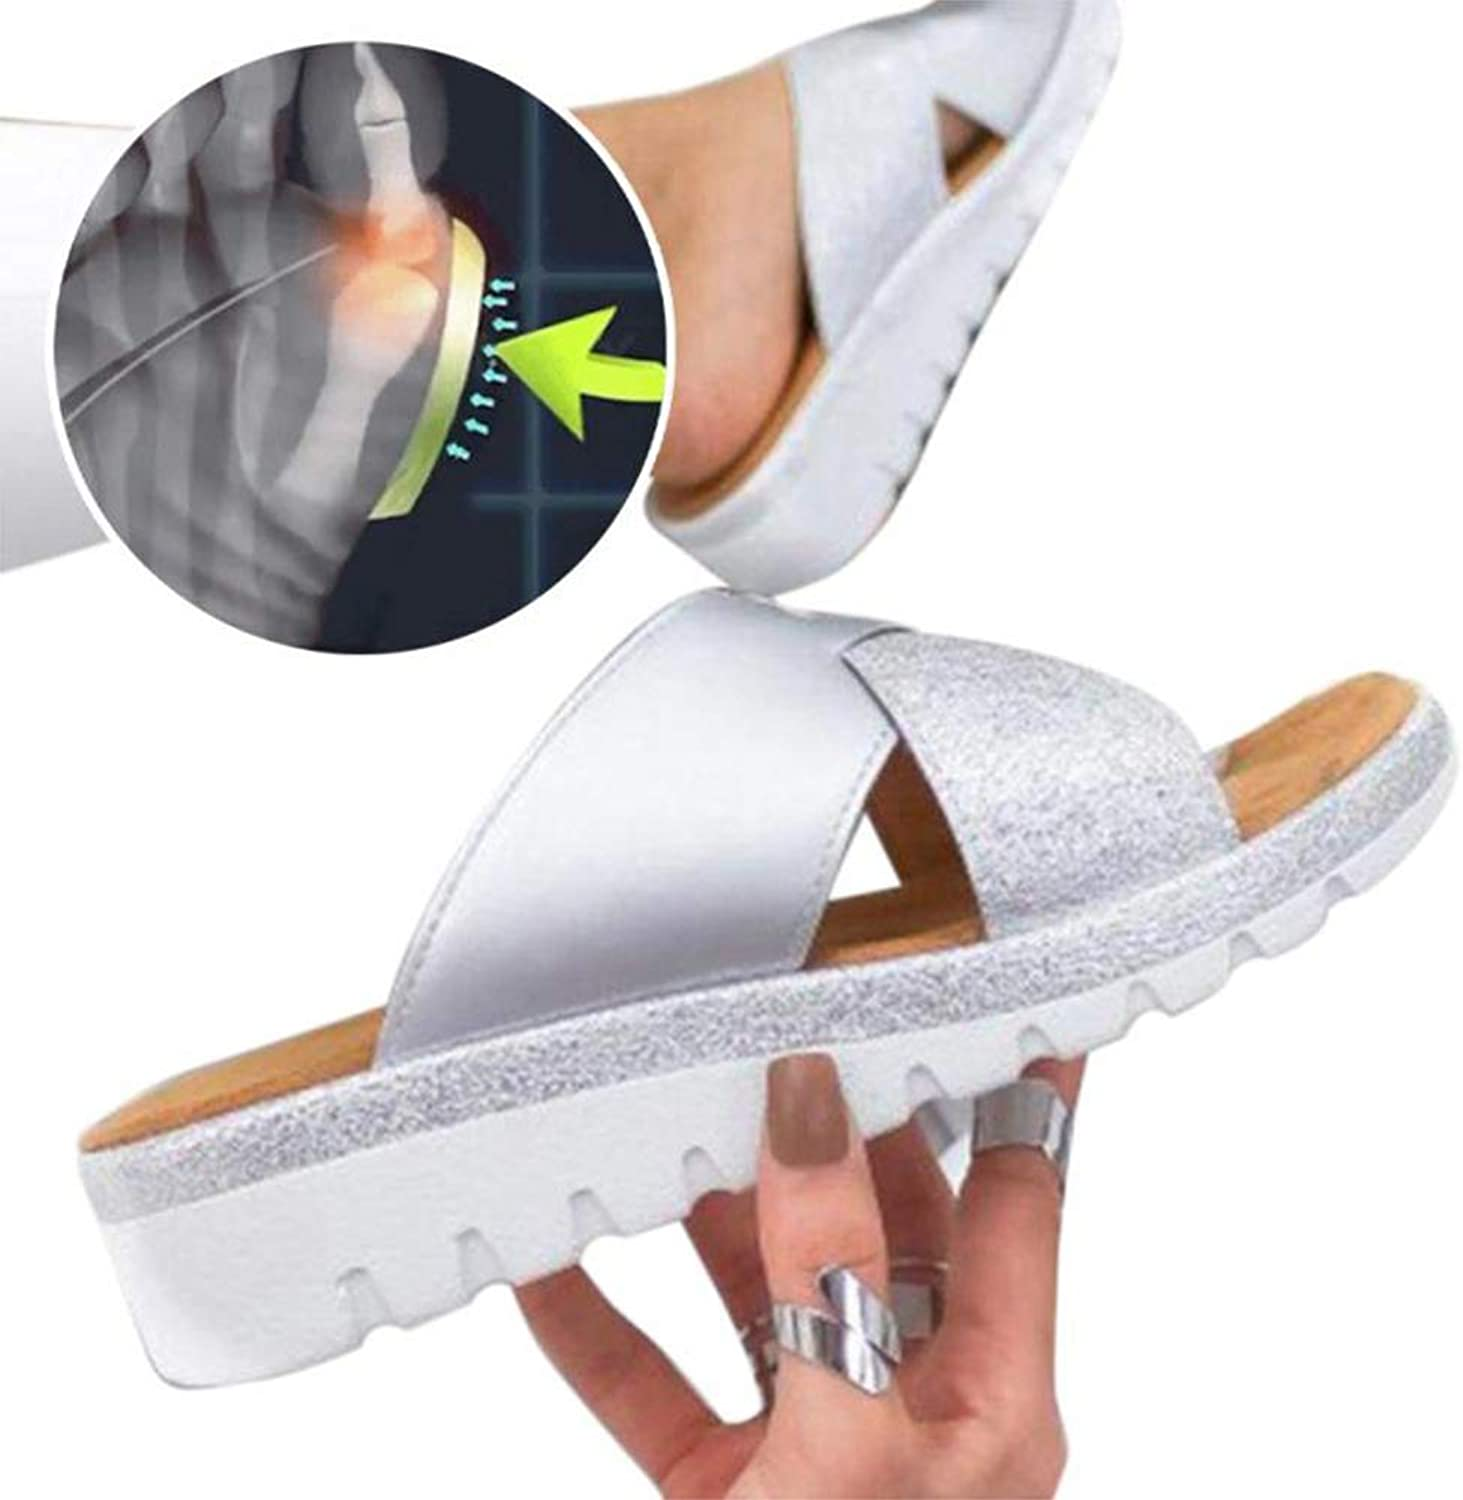 Orthotic Women PU Leather Slippers Slipper Outdoor Casual Beach Slipper Big Toe shoes Thumb Correction Sandal,1 Pair